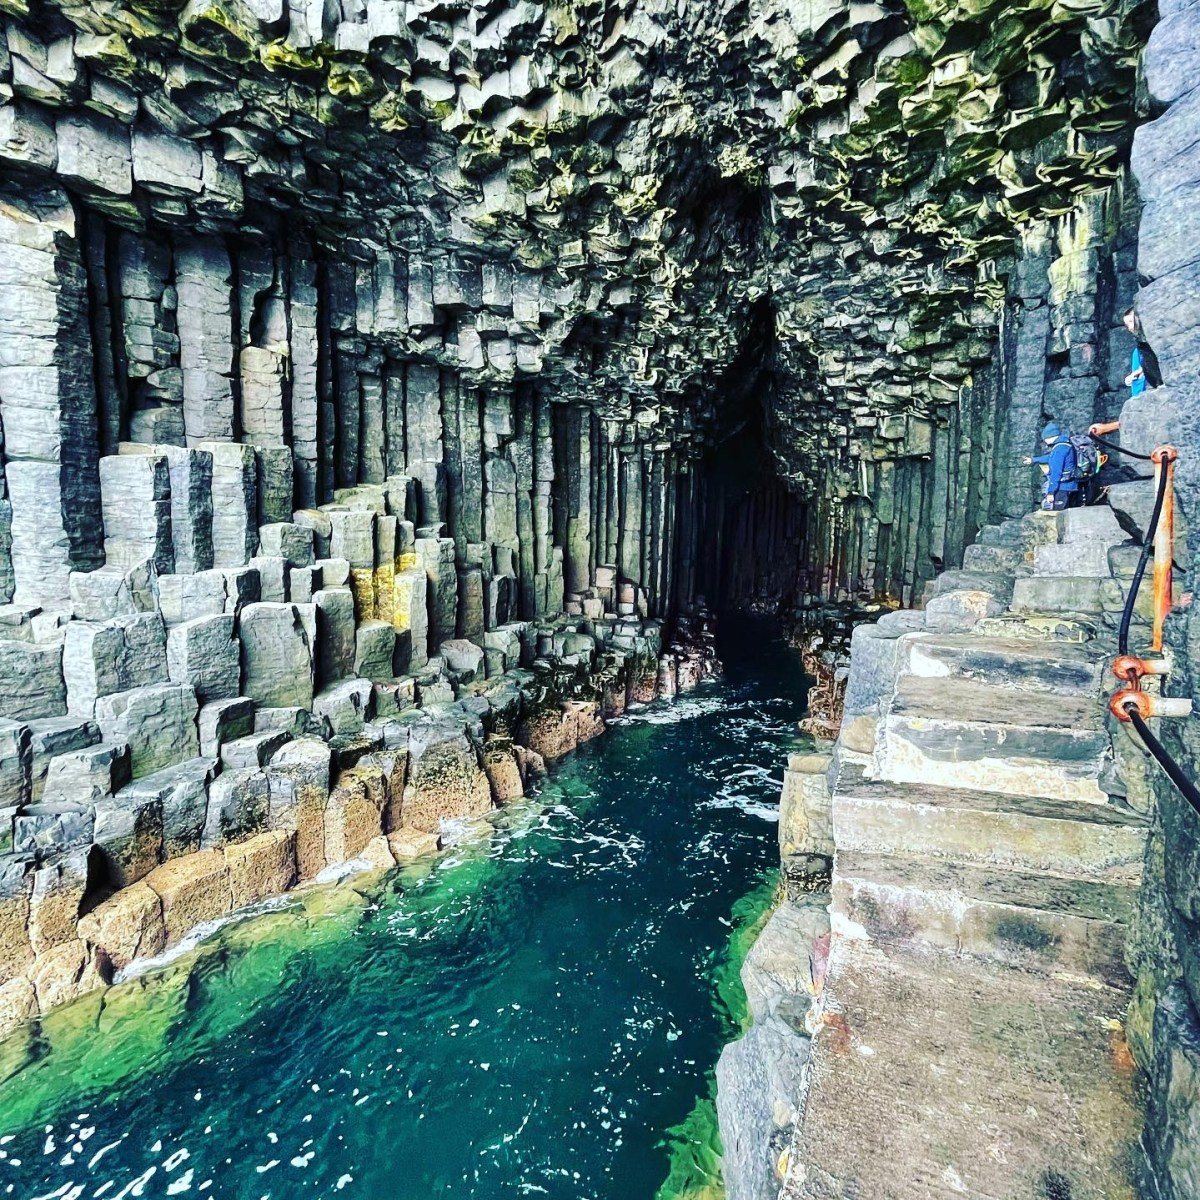 Entrance to Fingal's cave